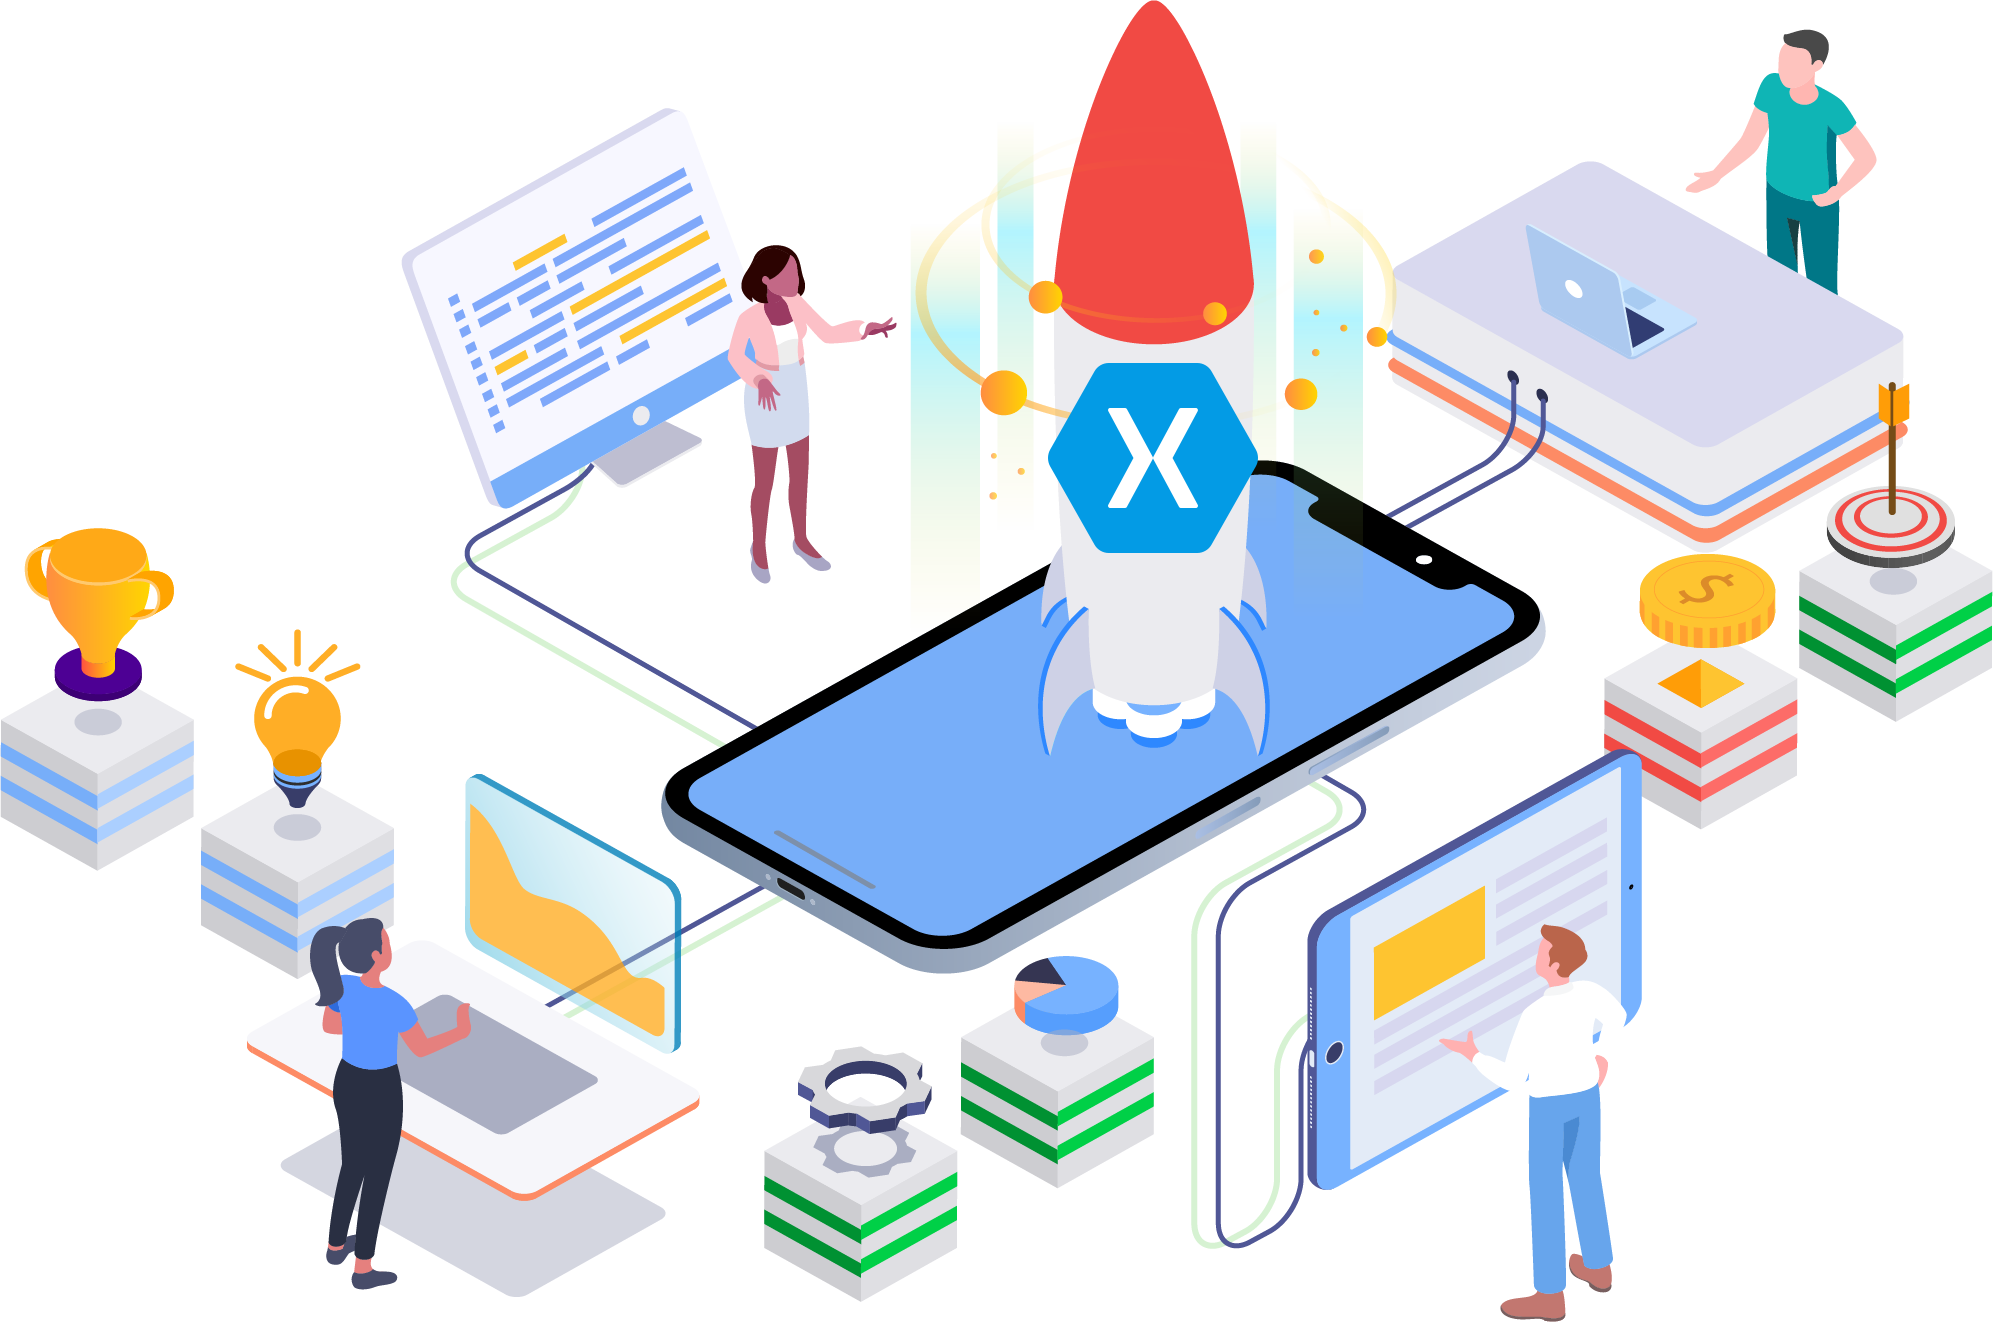 Ready to develop cross-platform Android and iOS apps with Xamarin with our best Xamarin development company in the U.K?